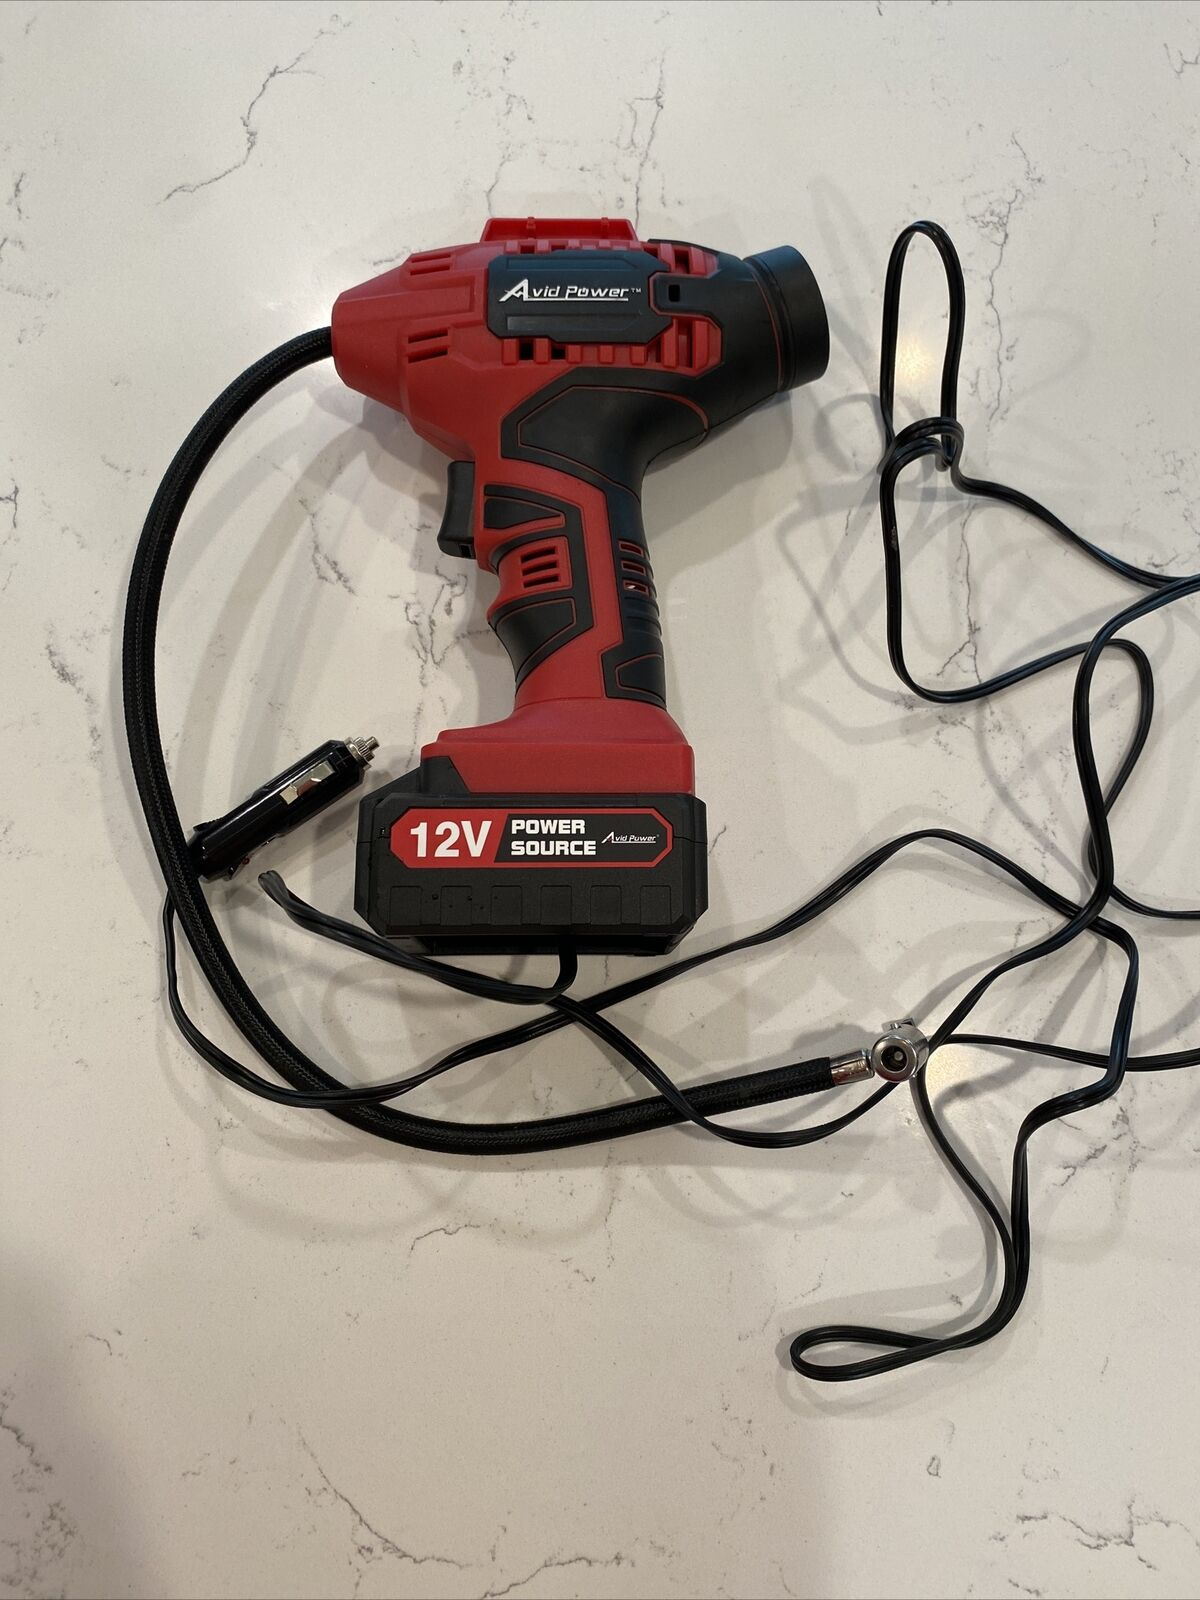 Used AVID POWER Tire Inflator Air Compressor 20V Tire Pump with  Li-ion Battery